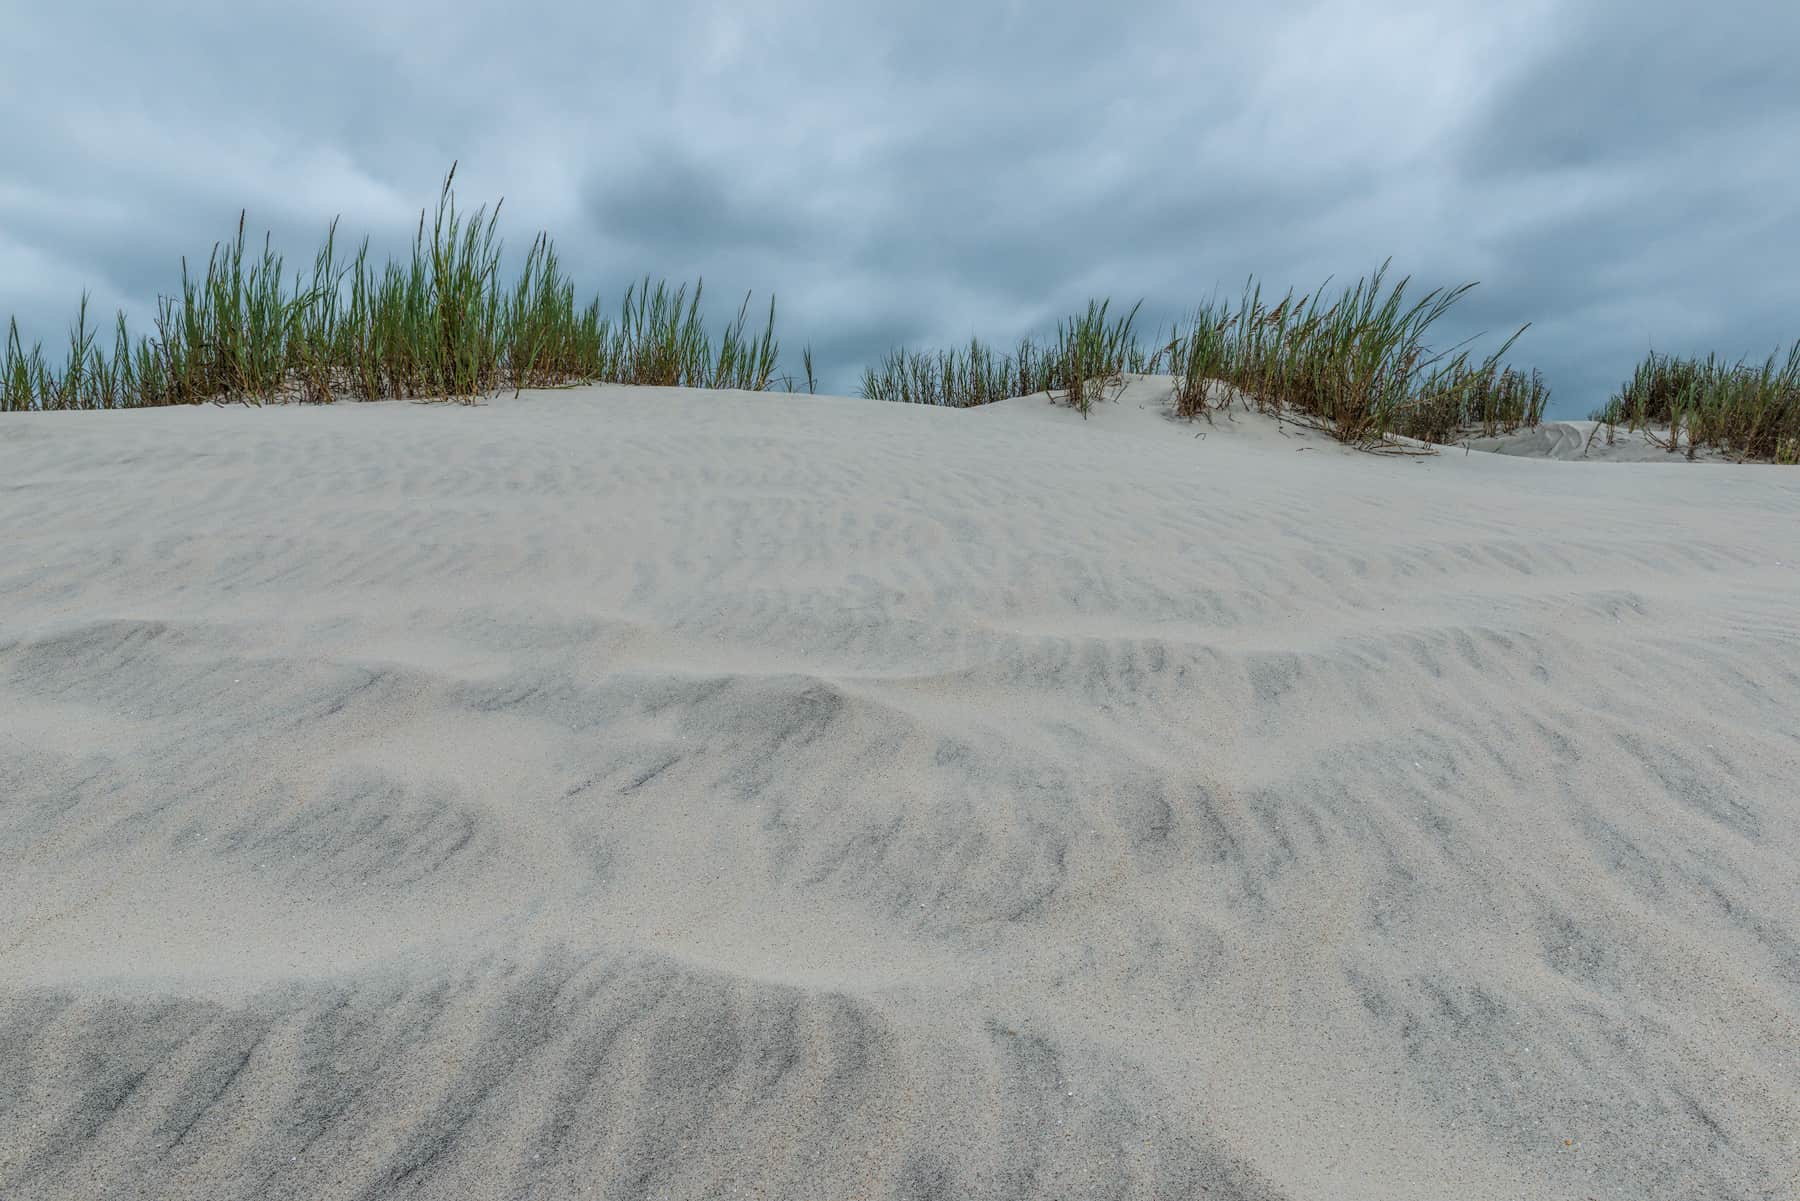 Up The Dune - SC_3119